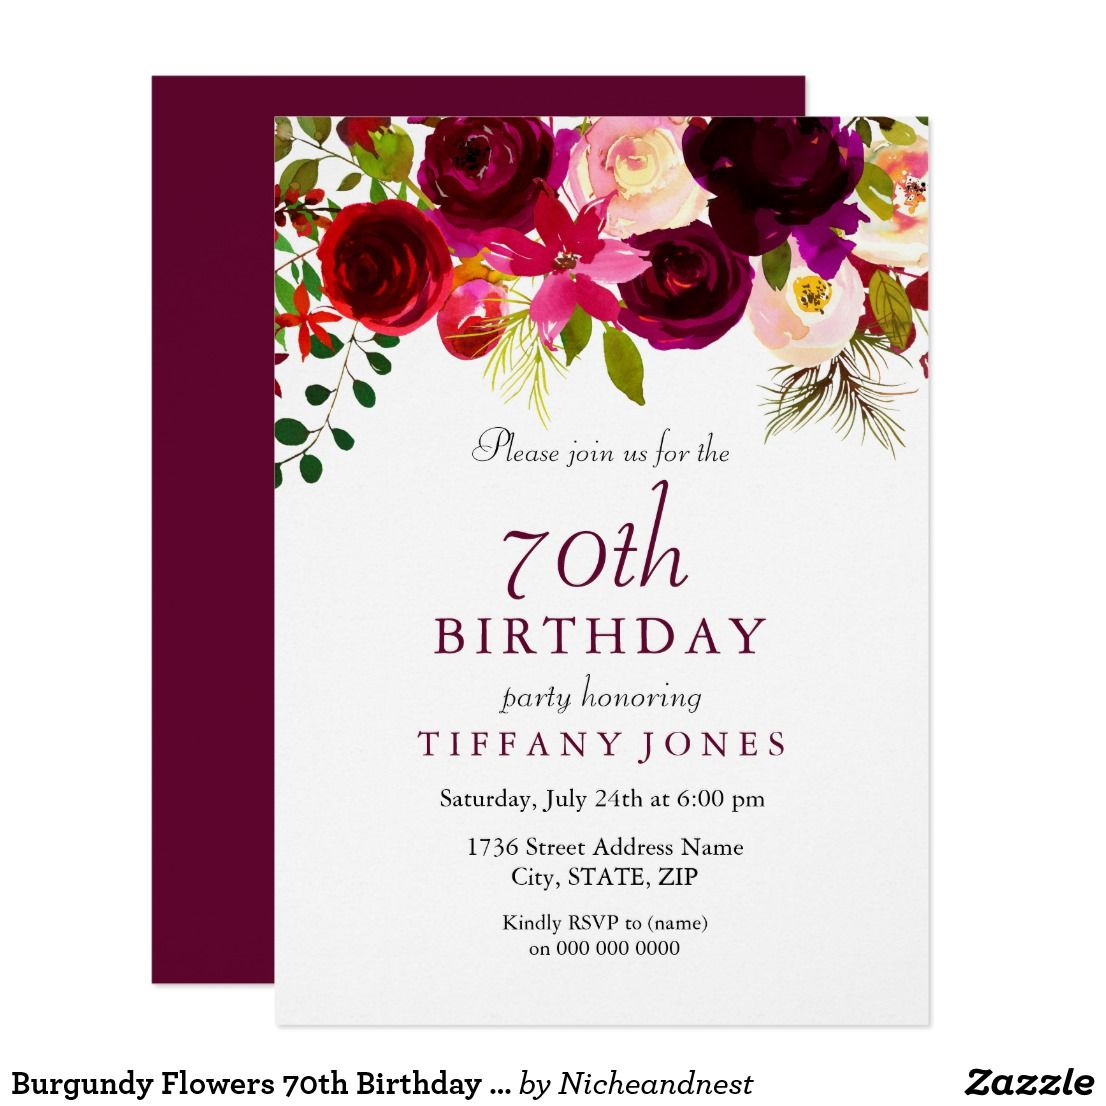 Burgundy Flowers 70th Birthday Party Invitation | { Happy Birthday ...